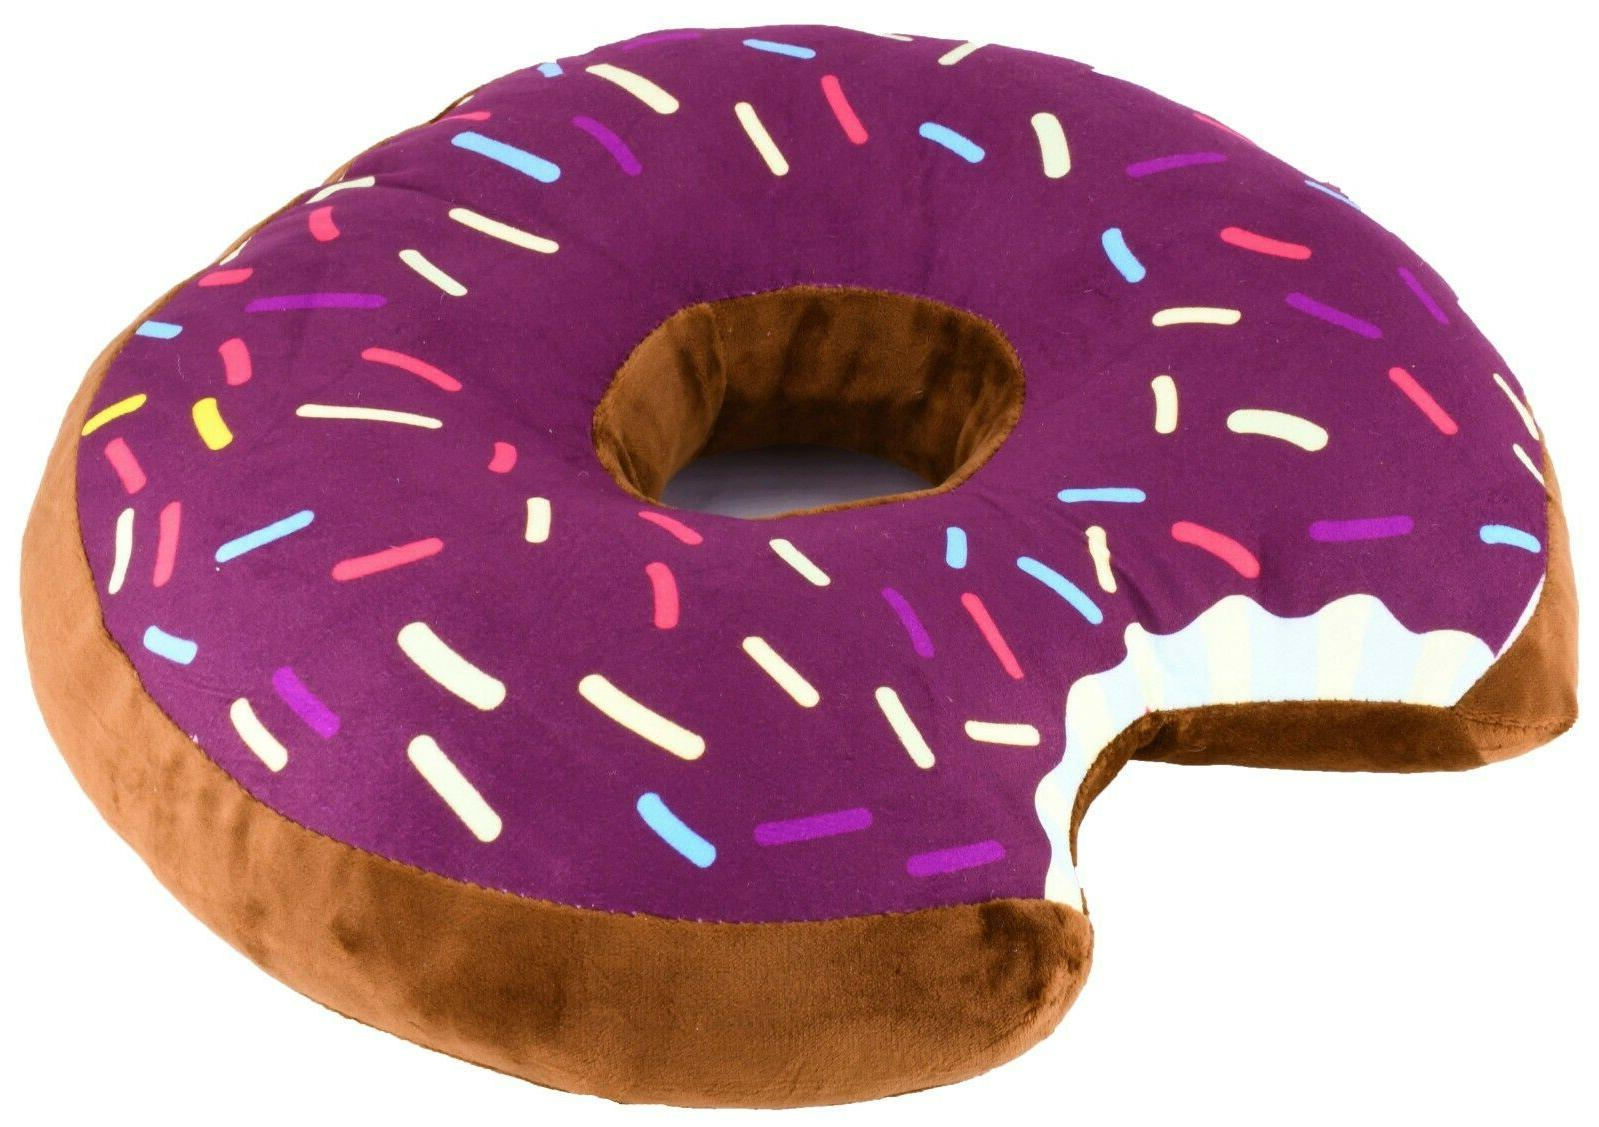 Donut Shaped Plush Sprinkled Comfy Seat Cushion Food Throw Pillow Toy